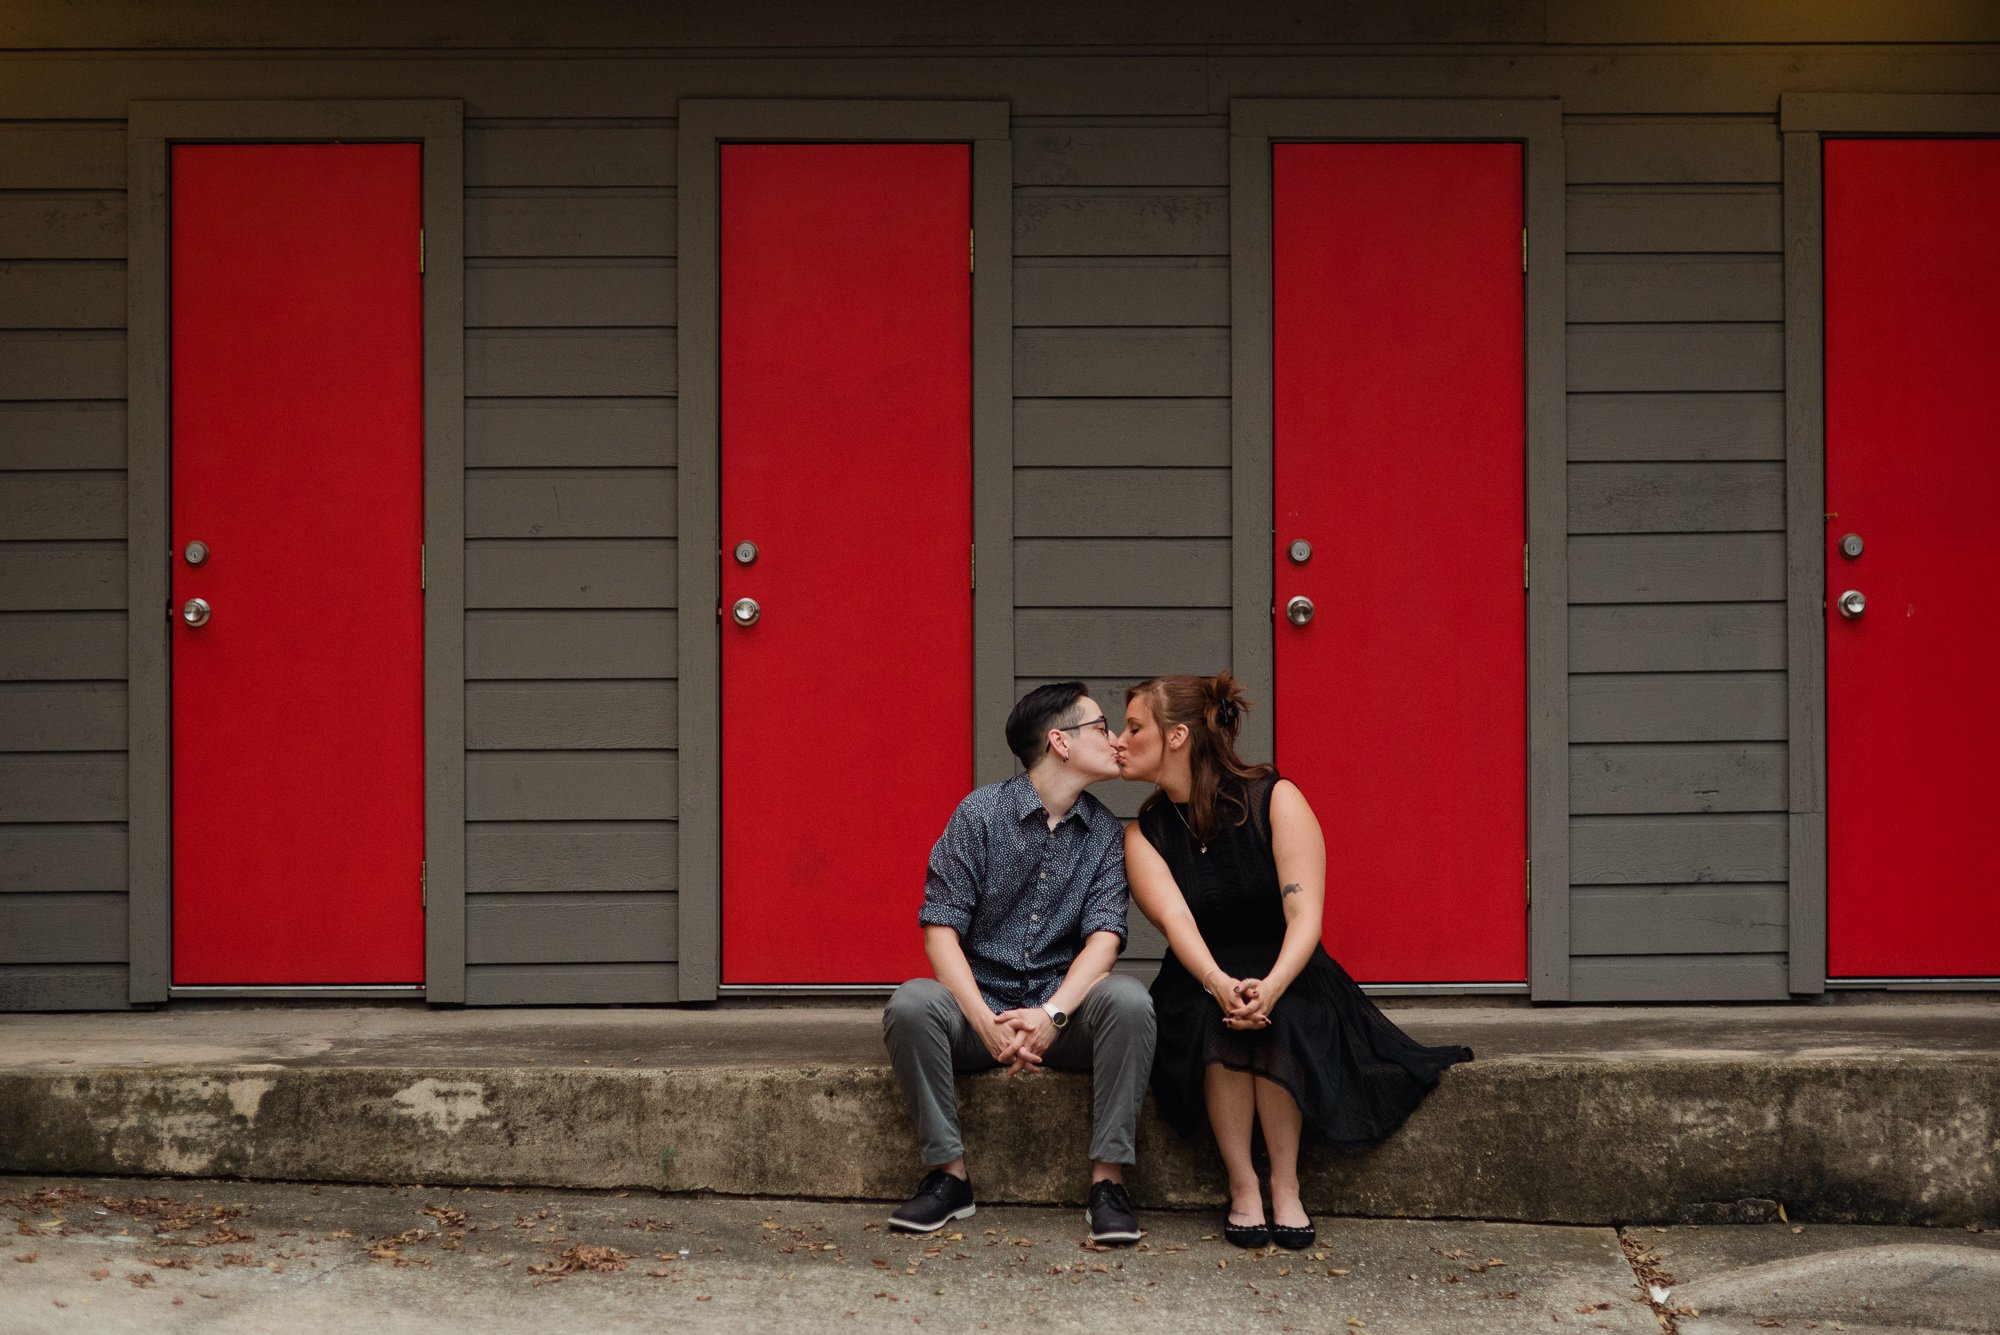 unique same sex couples session, fun and colorful urban engagement session